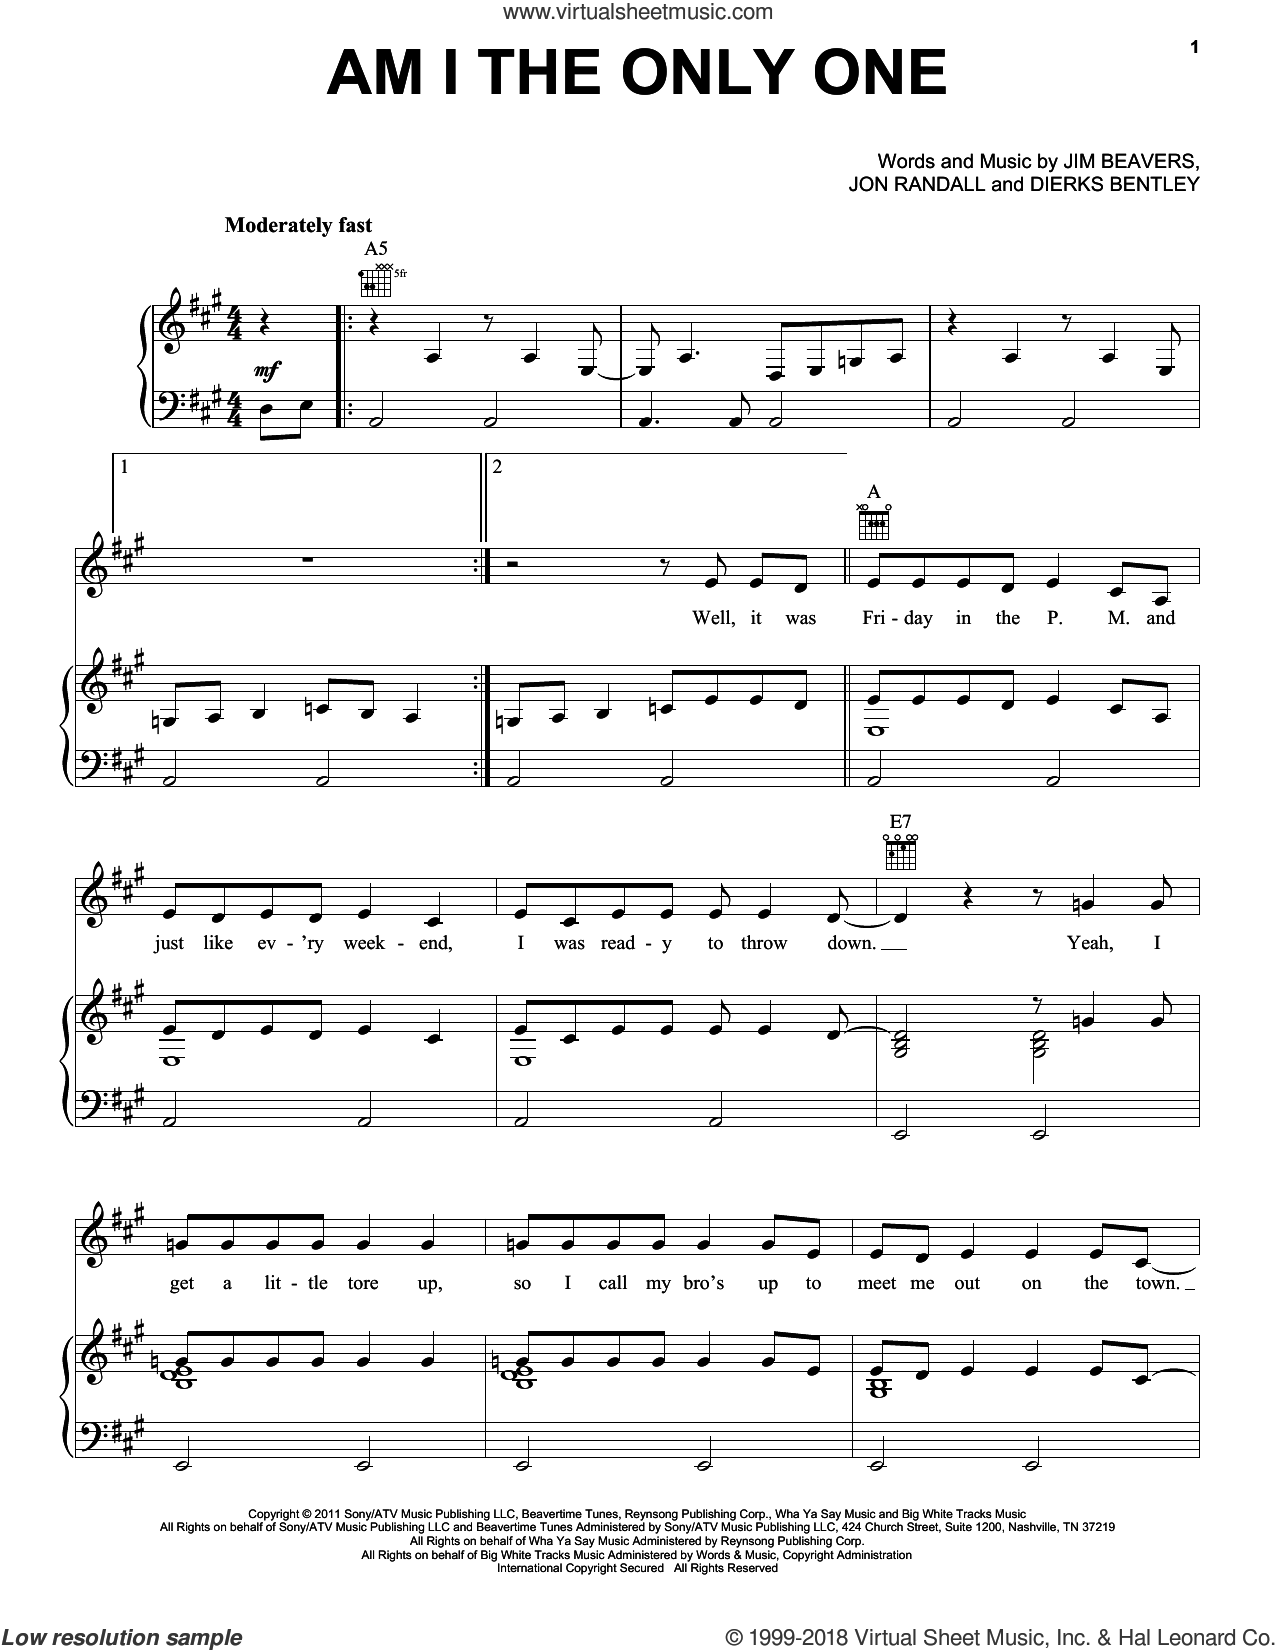 Am I The Only One sheet music for voice, piano or guitar by Dierks Bentley, Jim Beavers and Jon Randall, intermediate skill level